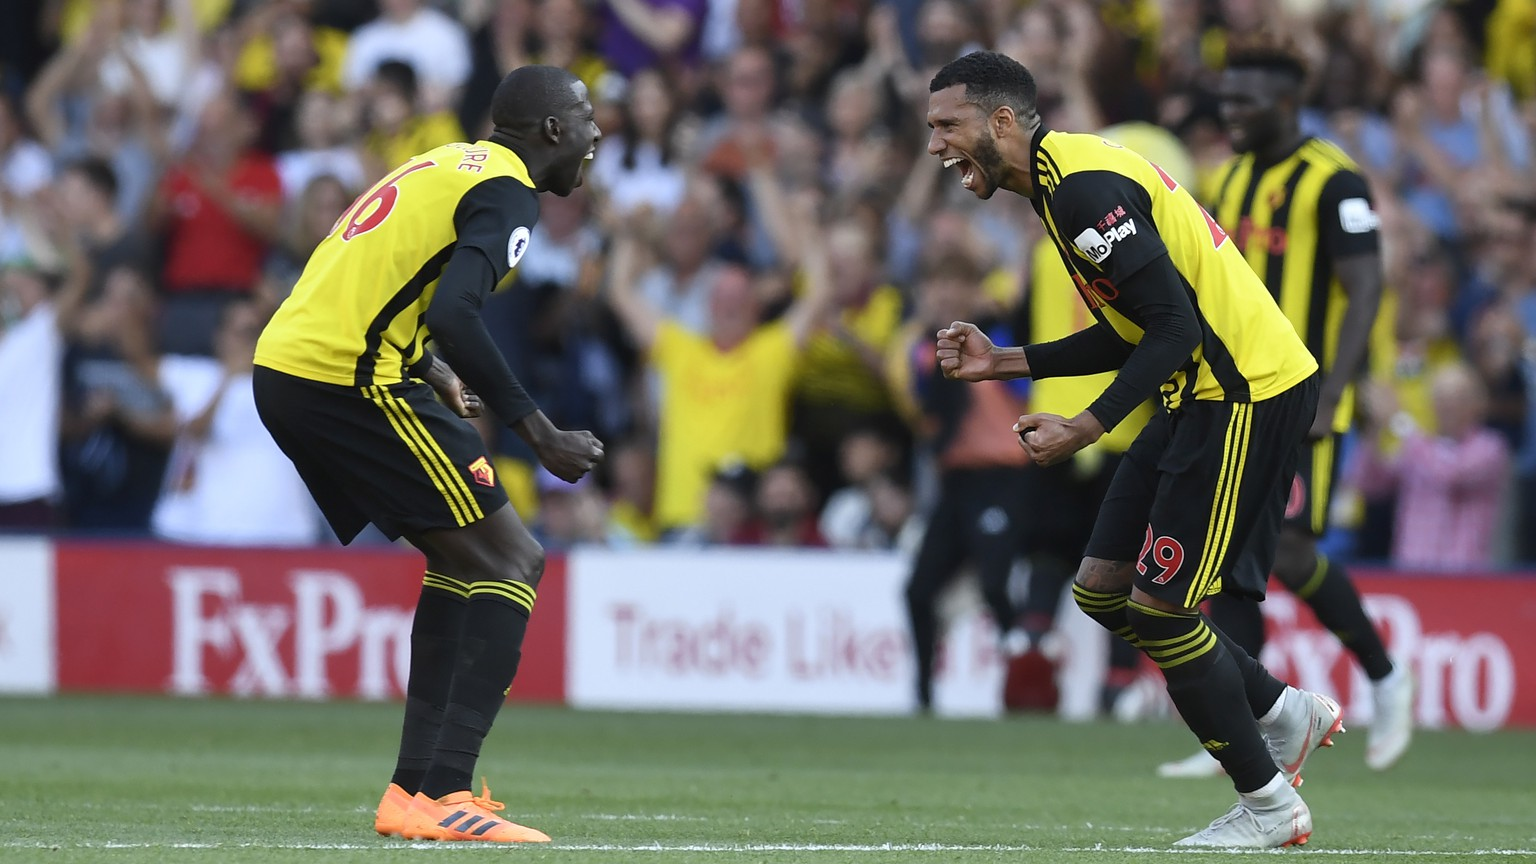 epa06992994 Watford's Abdoulaye Doucoure (L) and Etienne Capoue (R) celebrate their win after  the English Premier League soccer match between Watford and Tottenham at Vicarage Road,  Watford, London, Britain, 02 September 2018.  EPA/WILL OLIVER EDITORIAL USE ONLY. No use with unauthorized audio, video, data, fixture lists, club/league logos or 'live' services. Online in-match use limited to 120 images, no video emulation. No use in betting, games or single club/league/player publications.